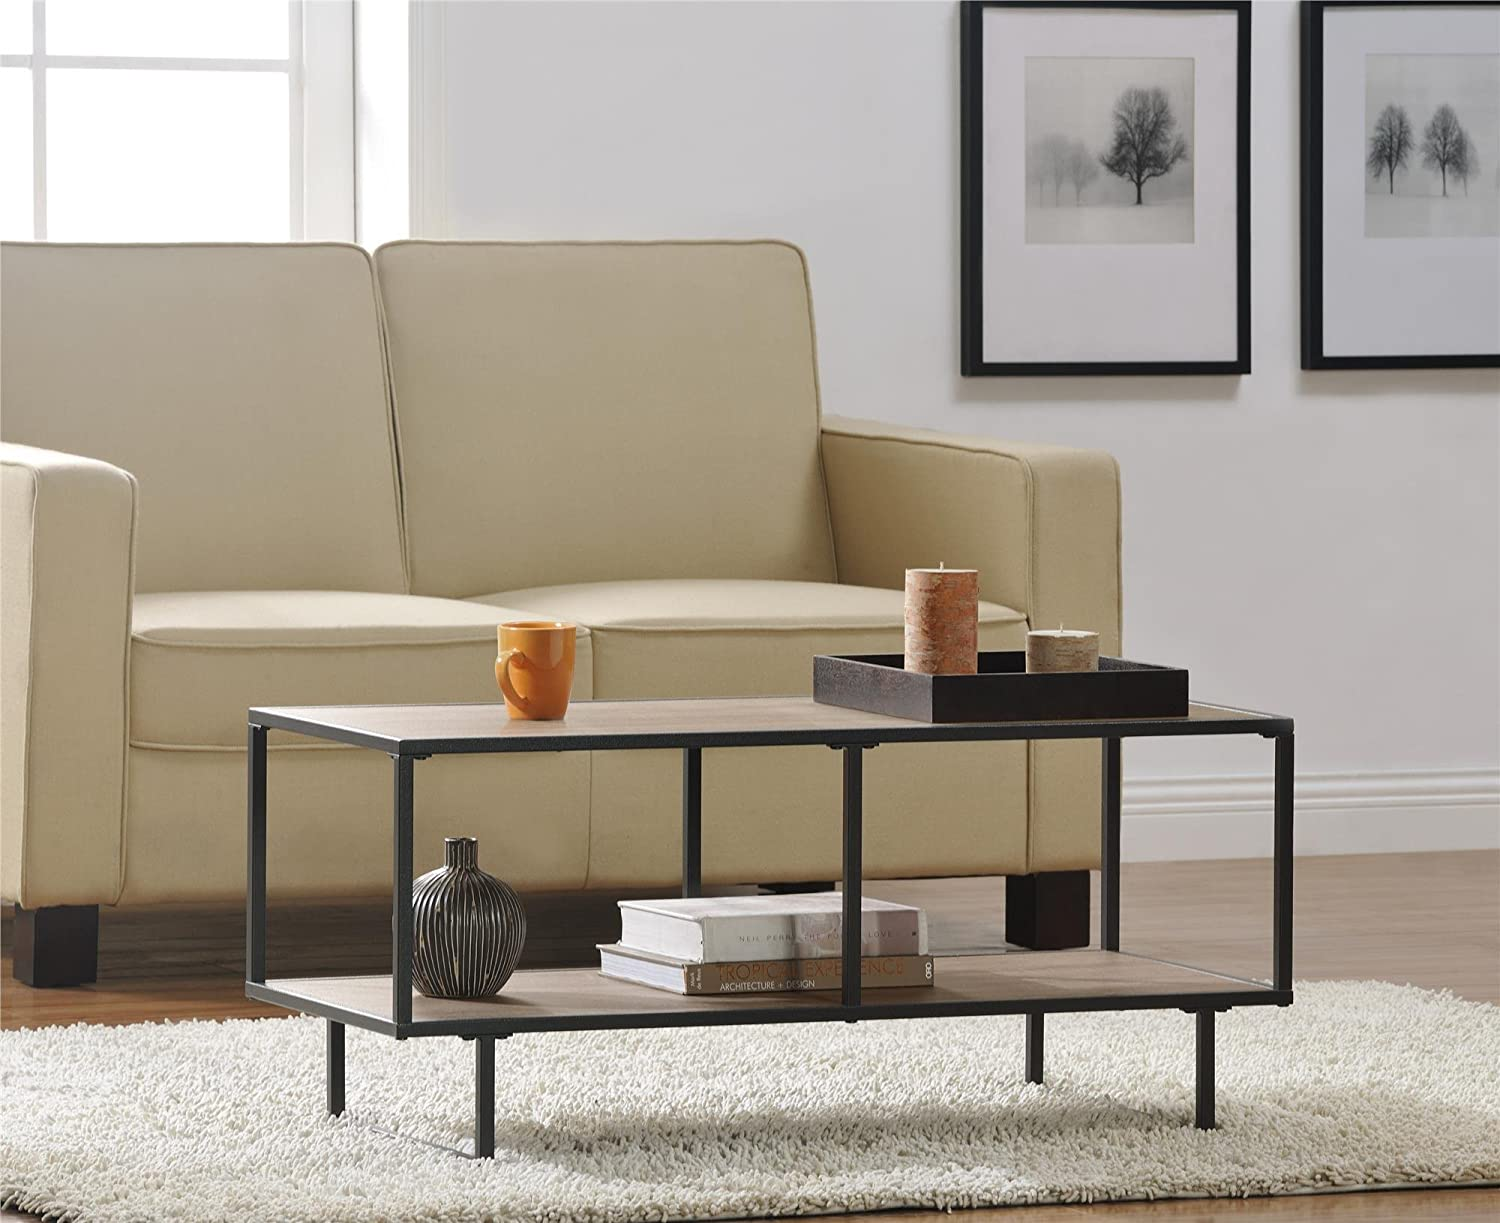 Altra emmett 42 tv standcoffee table with metal frame sonoma oak altra emmett 42 tv standcoffee table with metal frame sonoma oakgunmetal gray by altra furniture amazon kitchen home geotapseo Images